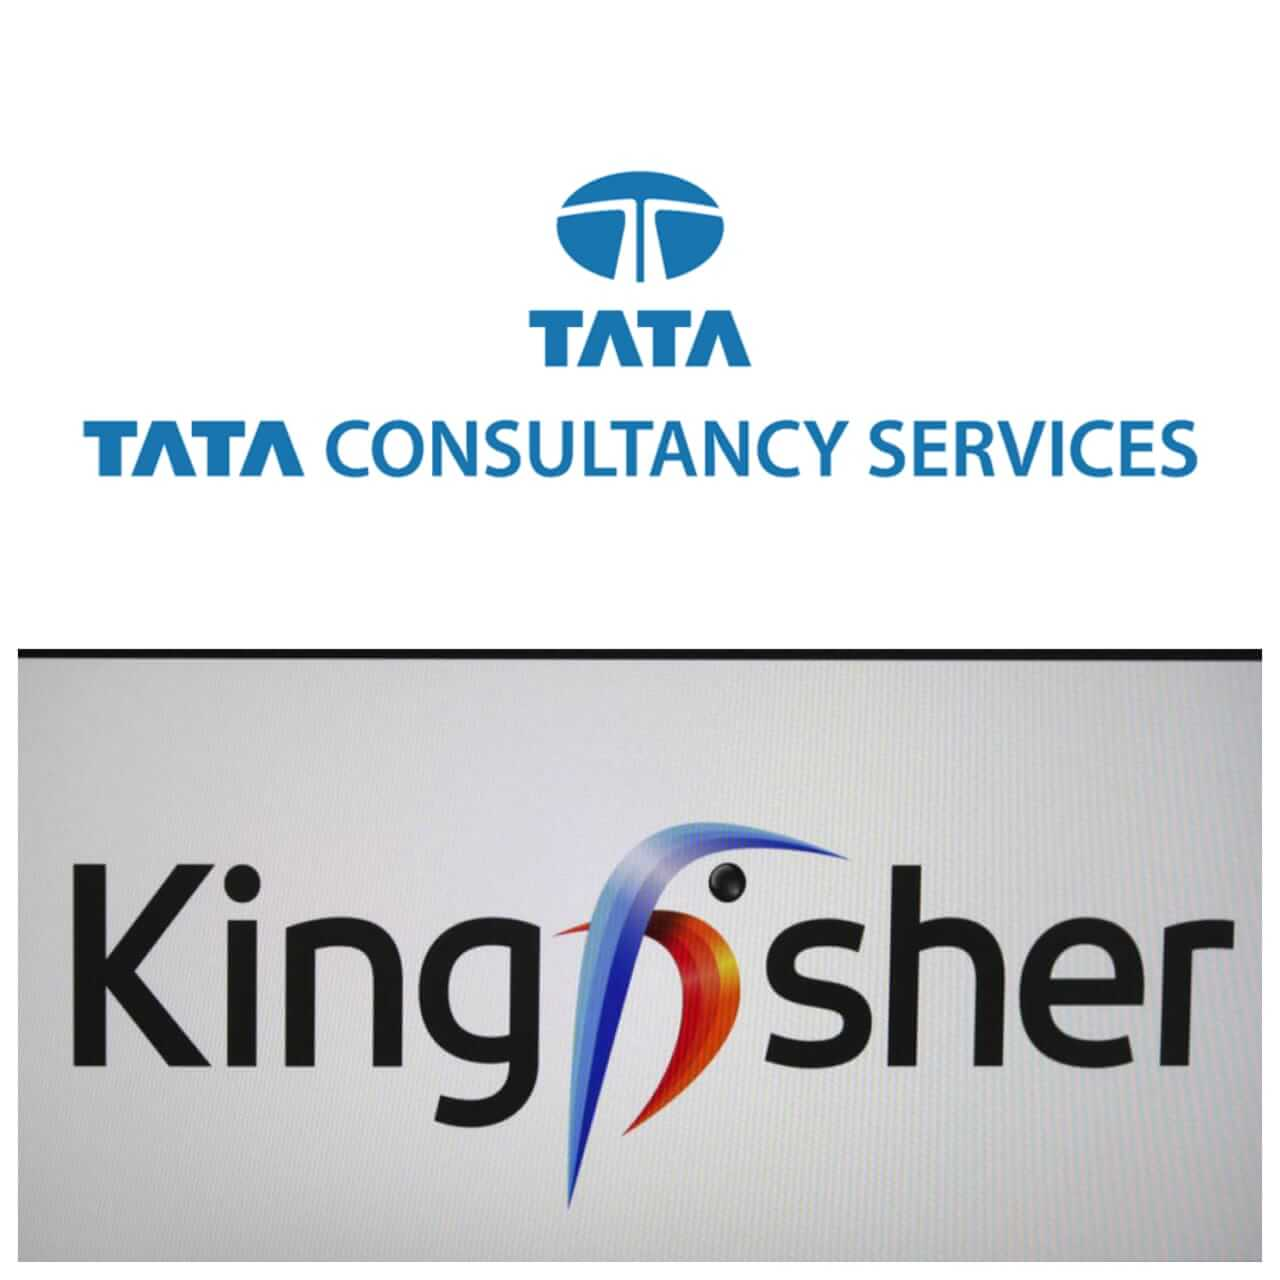 TCS wins new IT deal from Kingfisher Plc